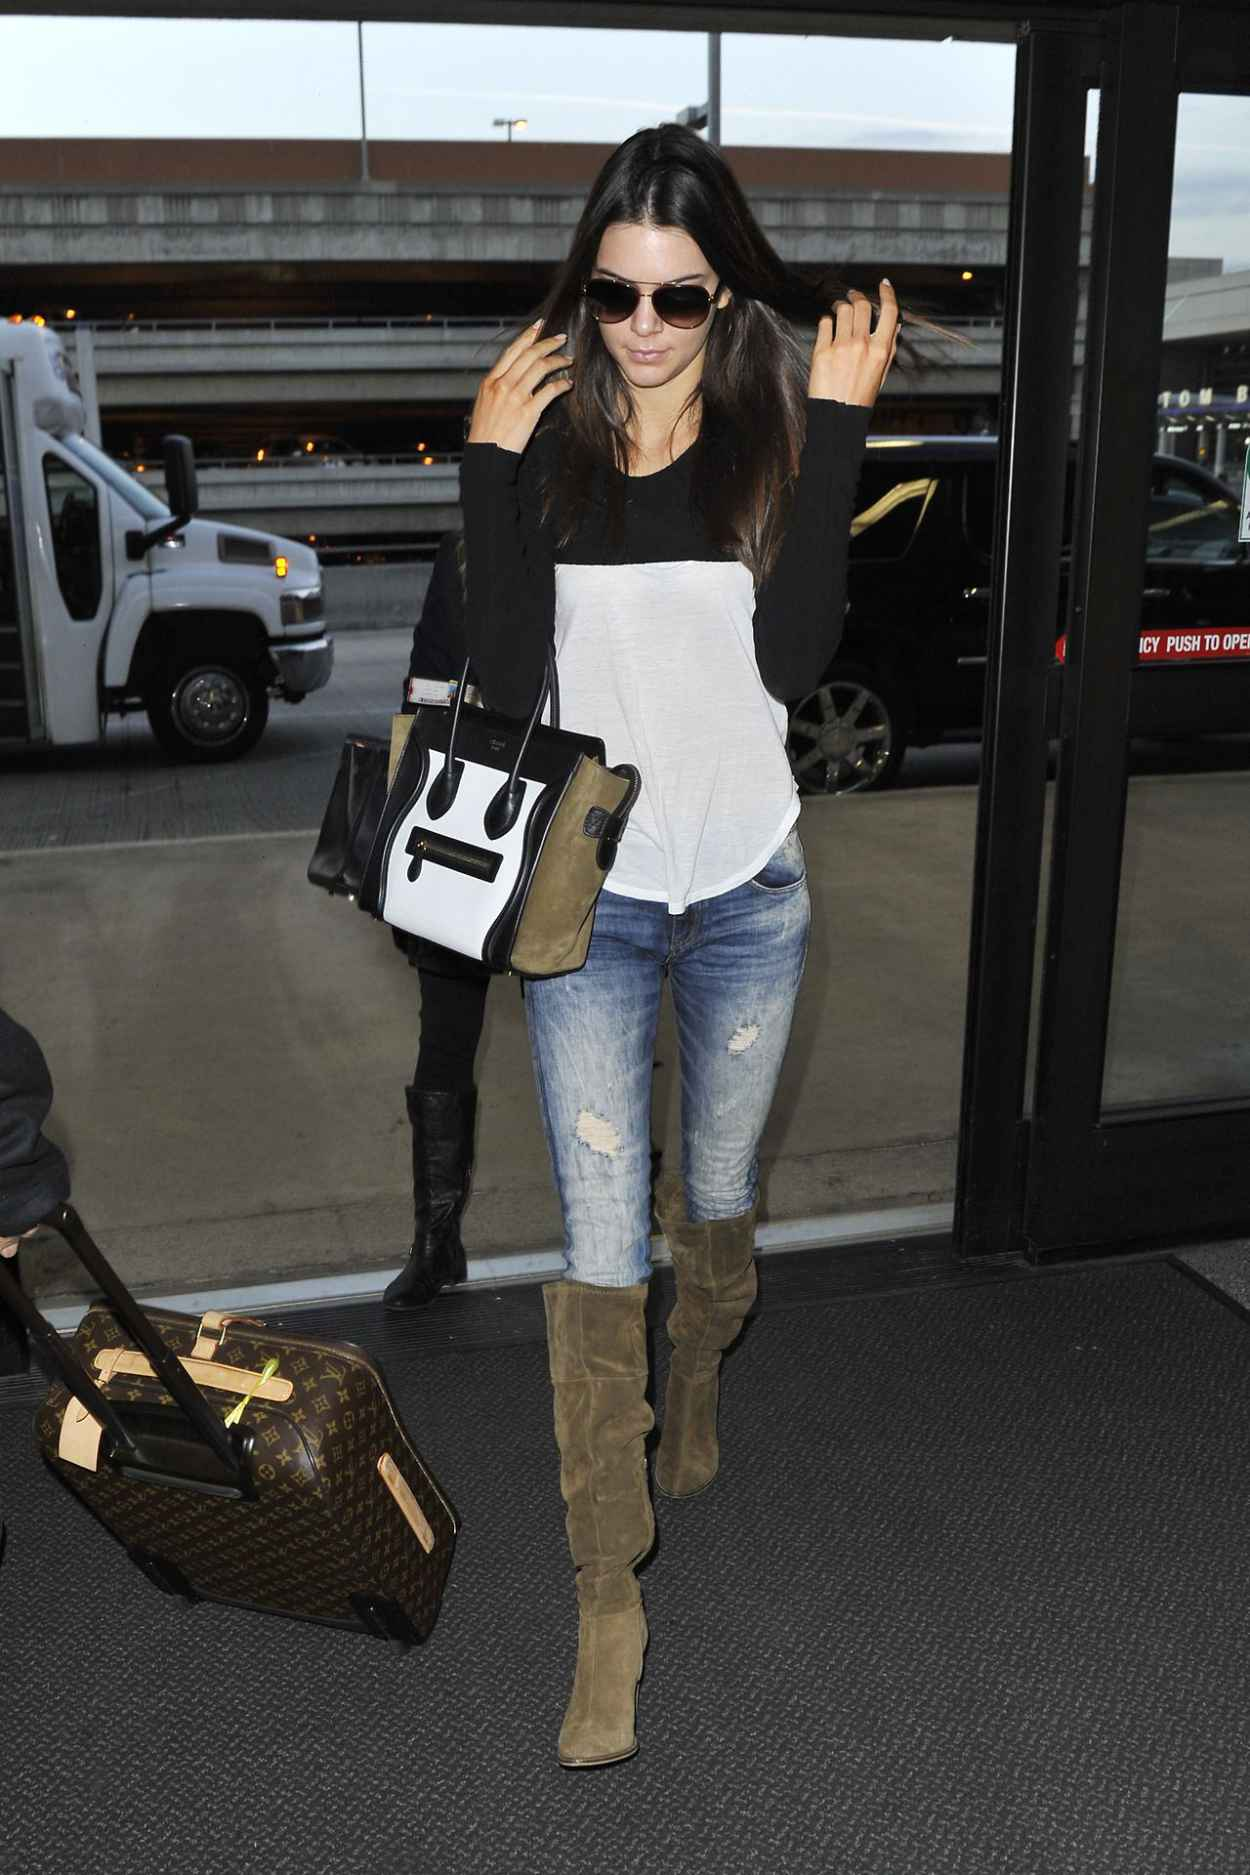 Kendall Jenner in Jeans at LAX Airport - November 2015-2